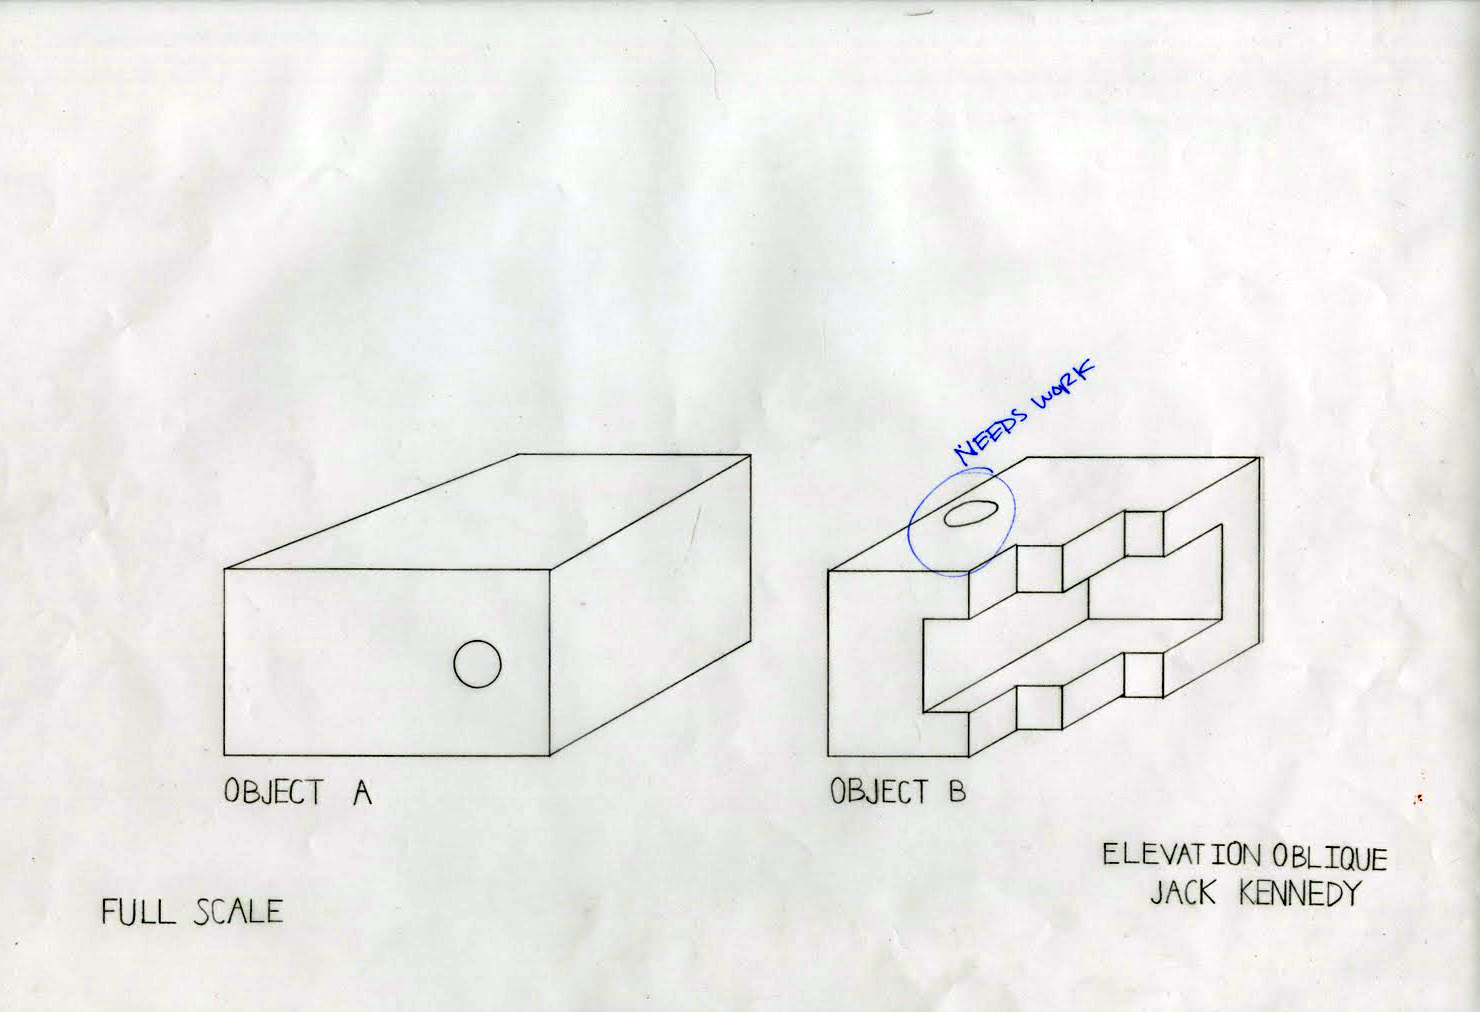 Plan Elevation Oblique : Jack looks around drafting examples